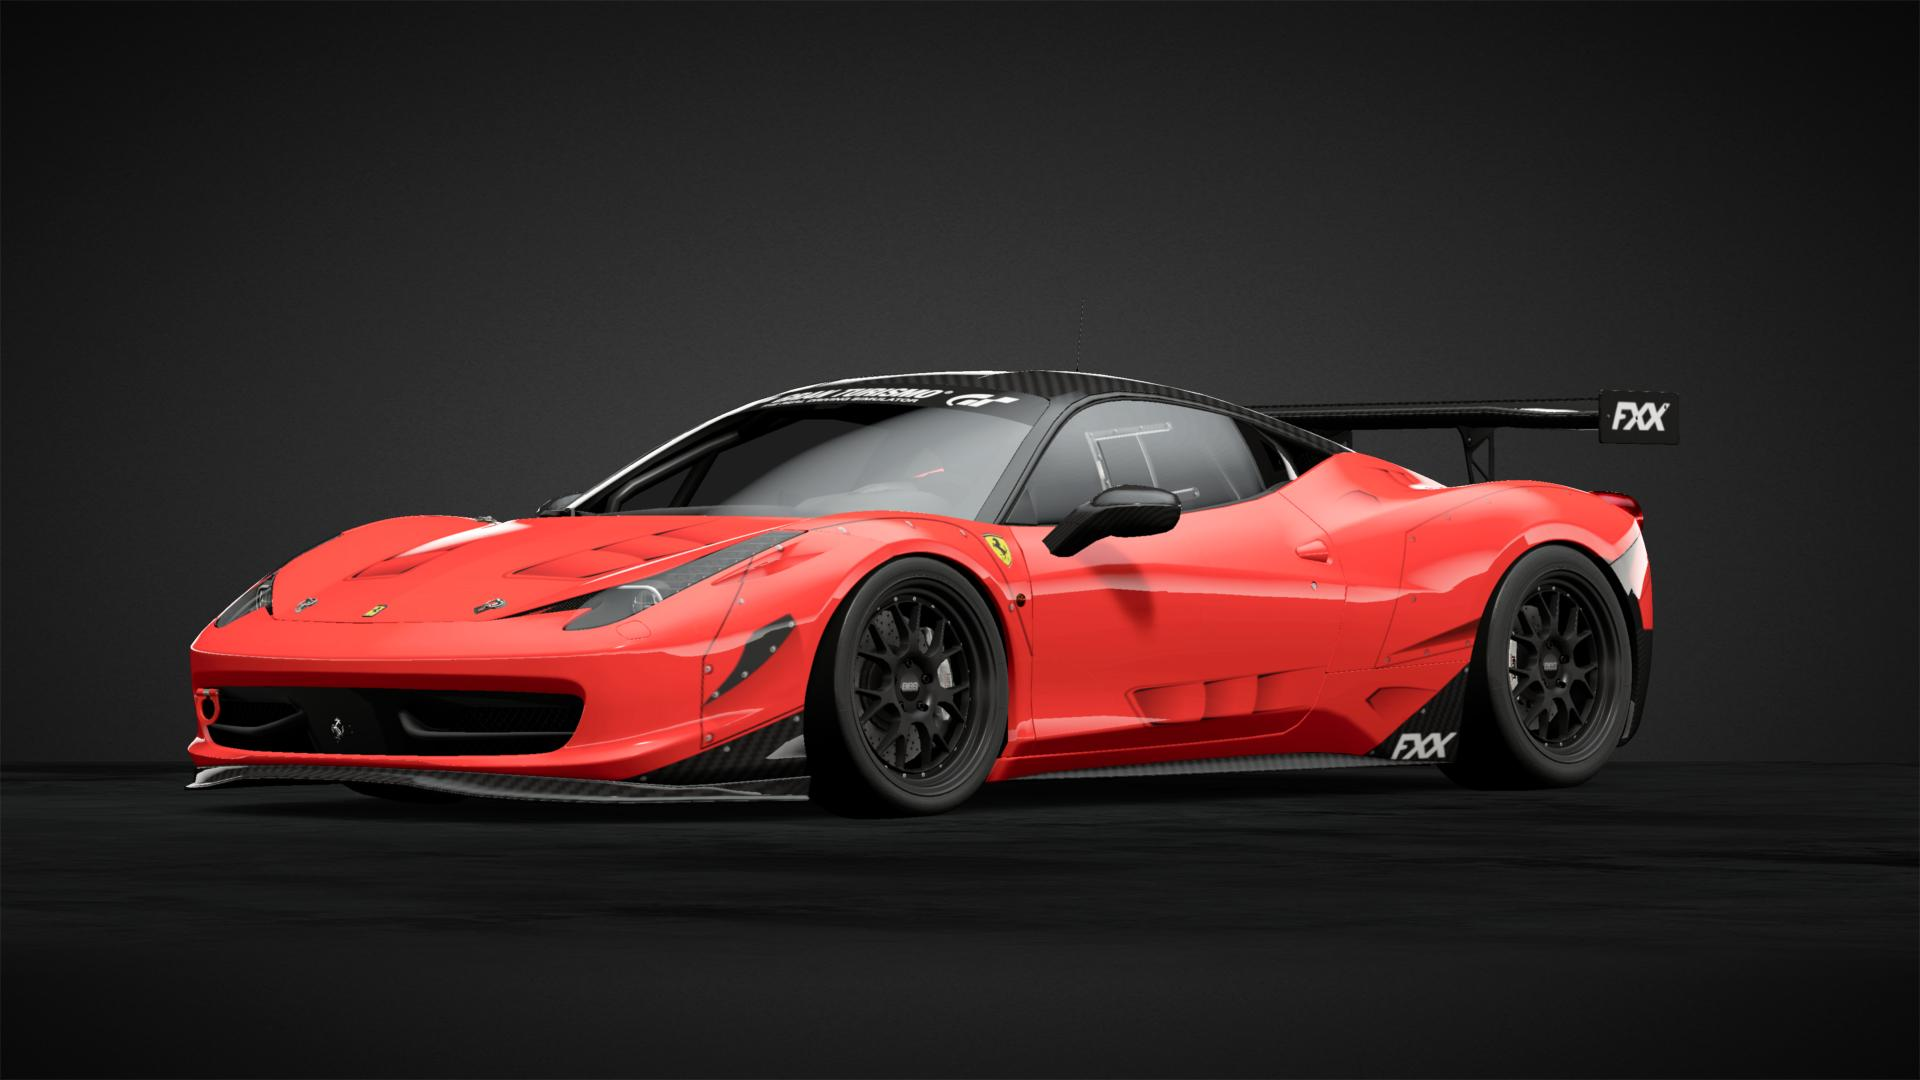 Ferrari 458 Fxx Wide Body Kit Car Livery By Xcolomb1anx